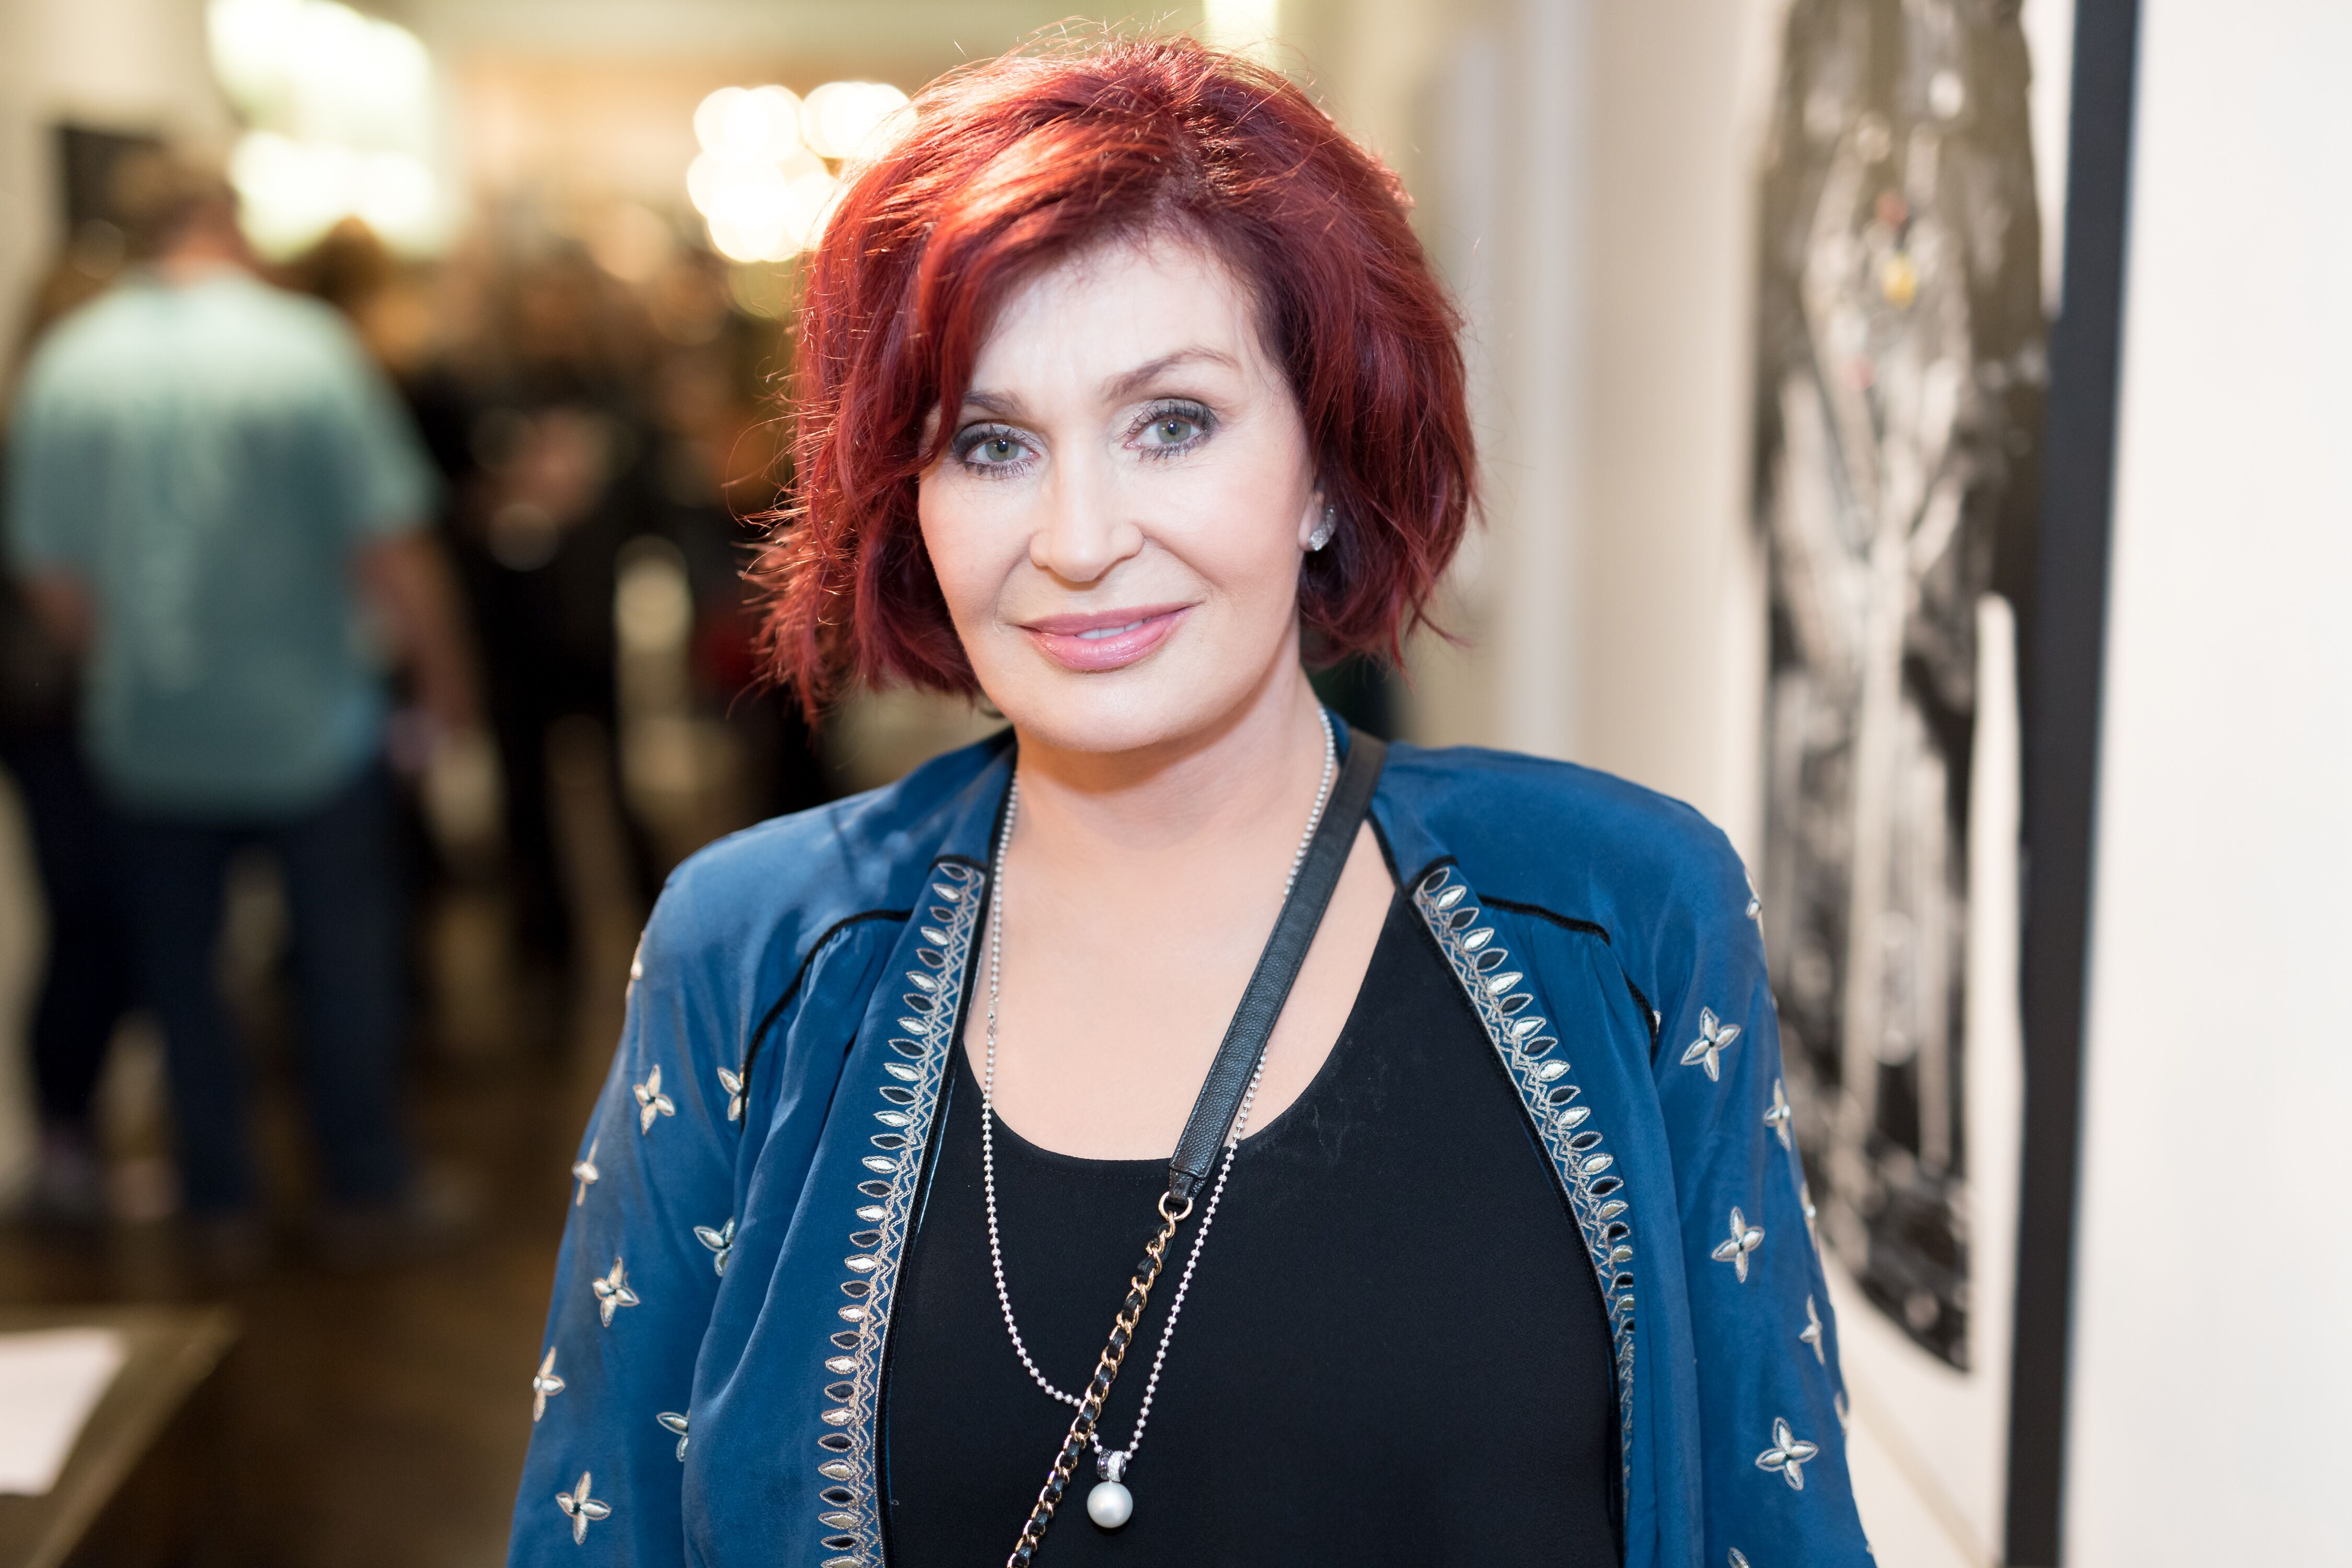 Sharon Osbourne at the Billy Morrison - Aude Somnia Solo Exhibition on September 28, 2017 in Los Angeles, California.   Photo: Getty Images